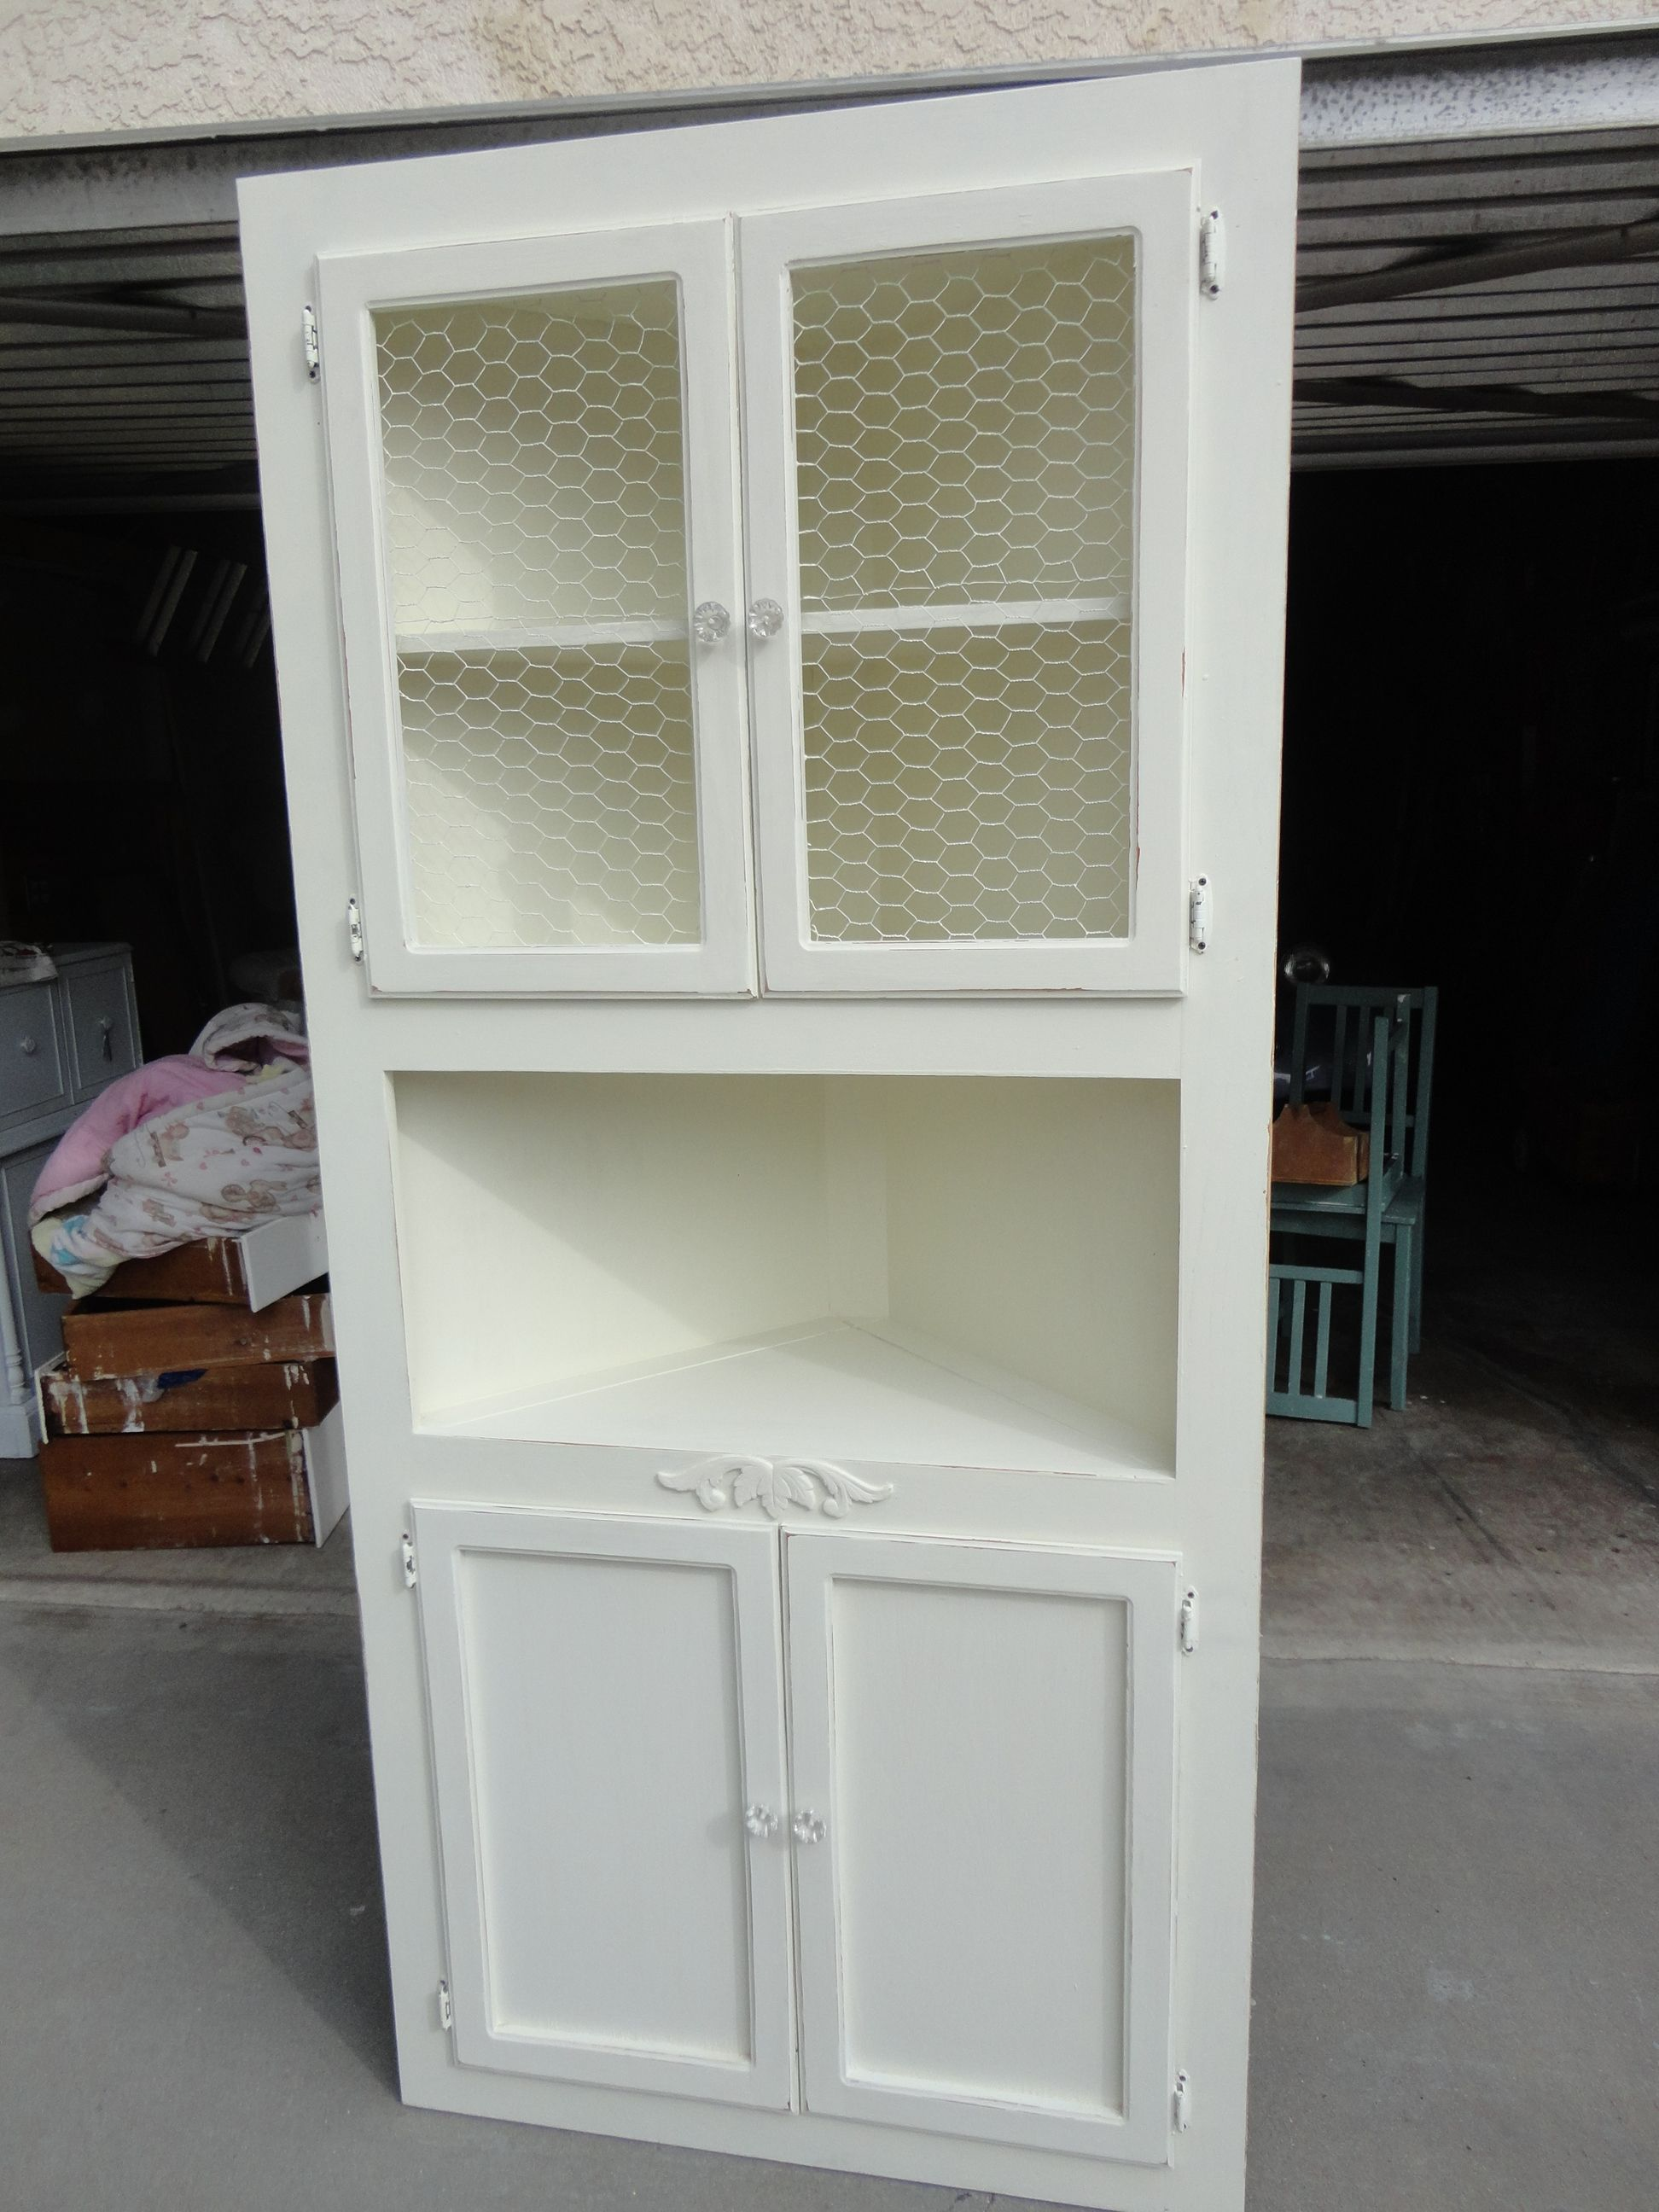 Oak Corner Cabinet Painted White I Removed The Glass And Stapled Chicken Wire Added